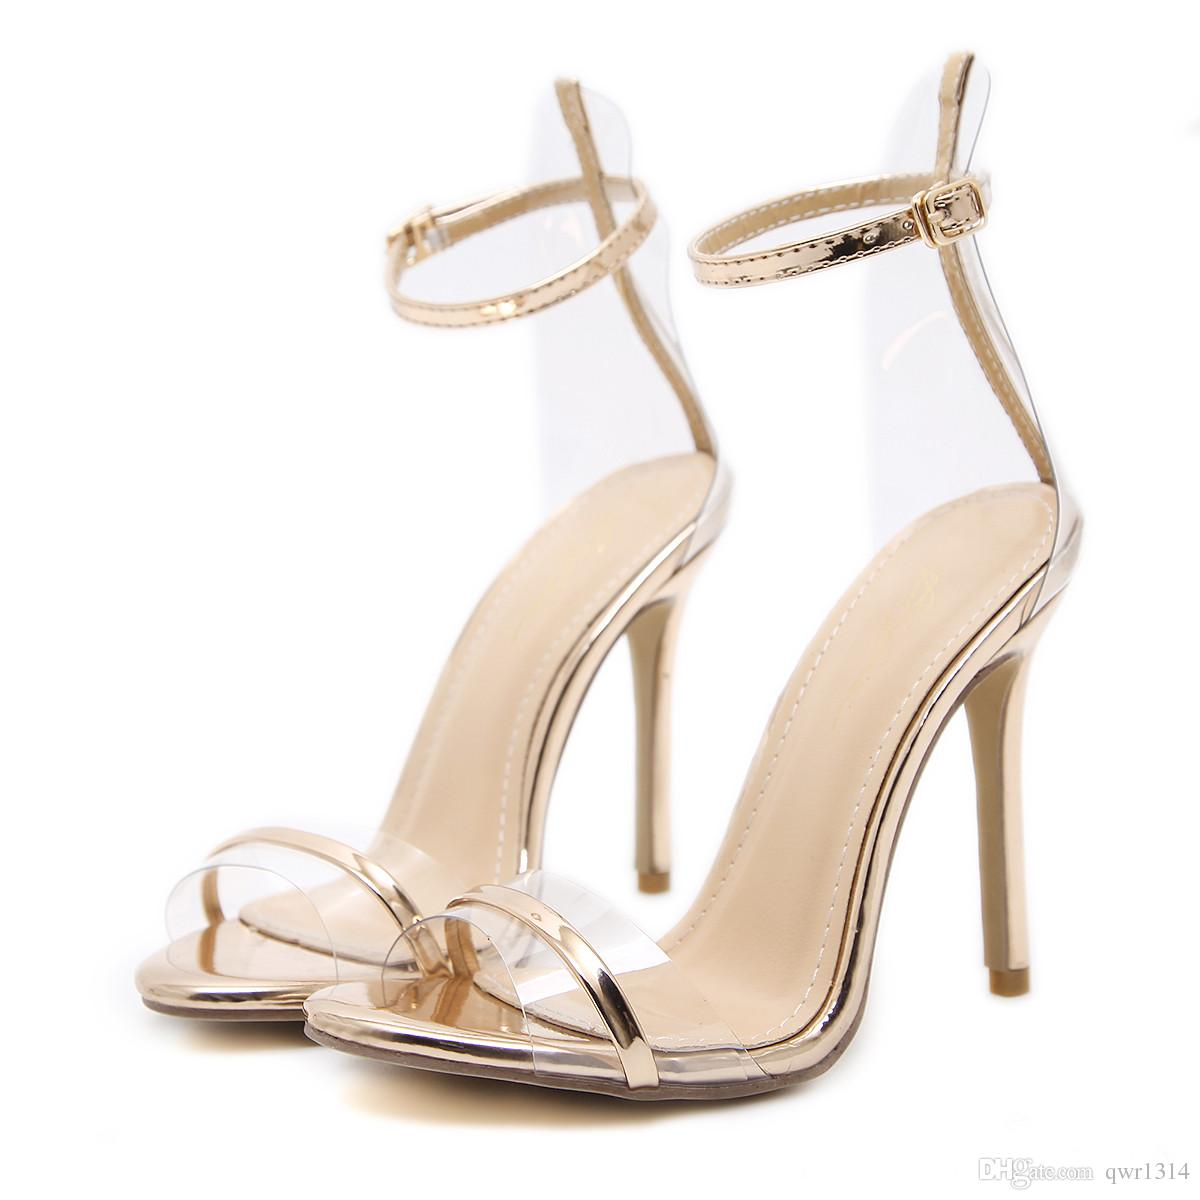 8cb920f19951 New Fashionl Women High Heel Pumps Open Toe Roman Style Champagne Word  Sandals Catwalk Show Style Sandals Sexy Lady Party Shoes Plus Size Womens  Loafers ...